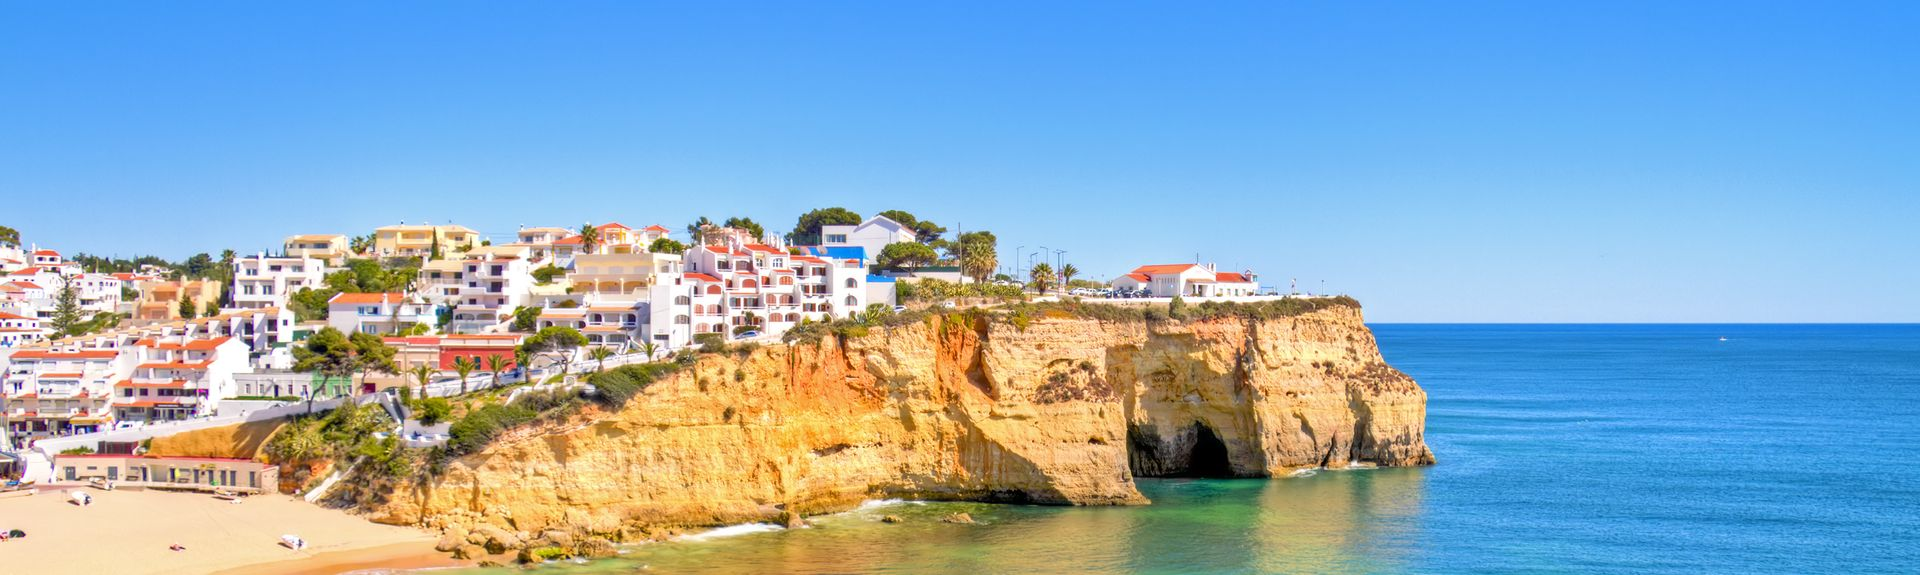 Carvoeiro, Faro District, Portugal